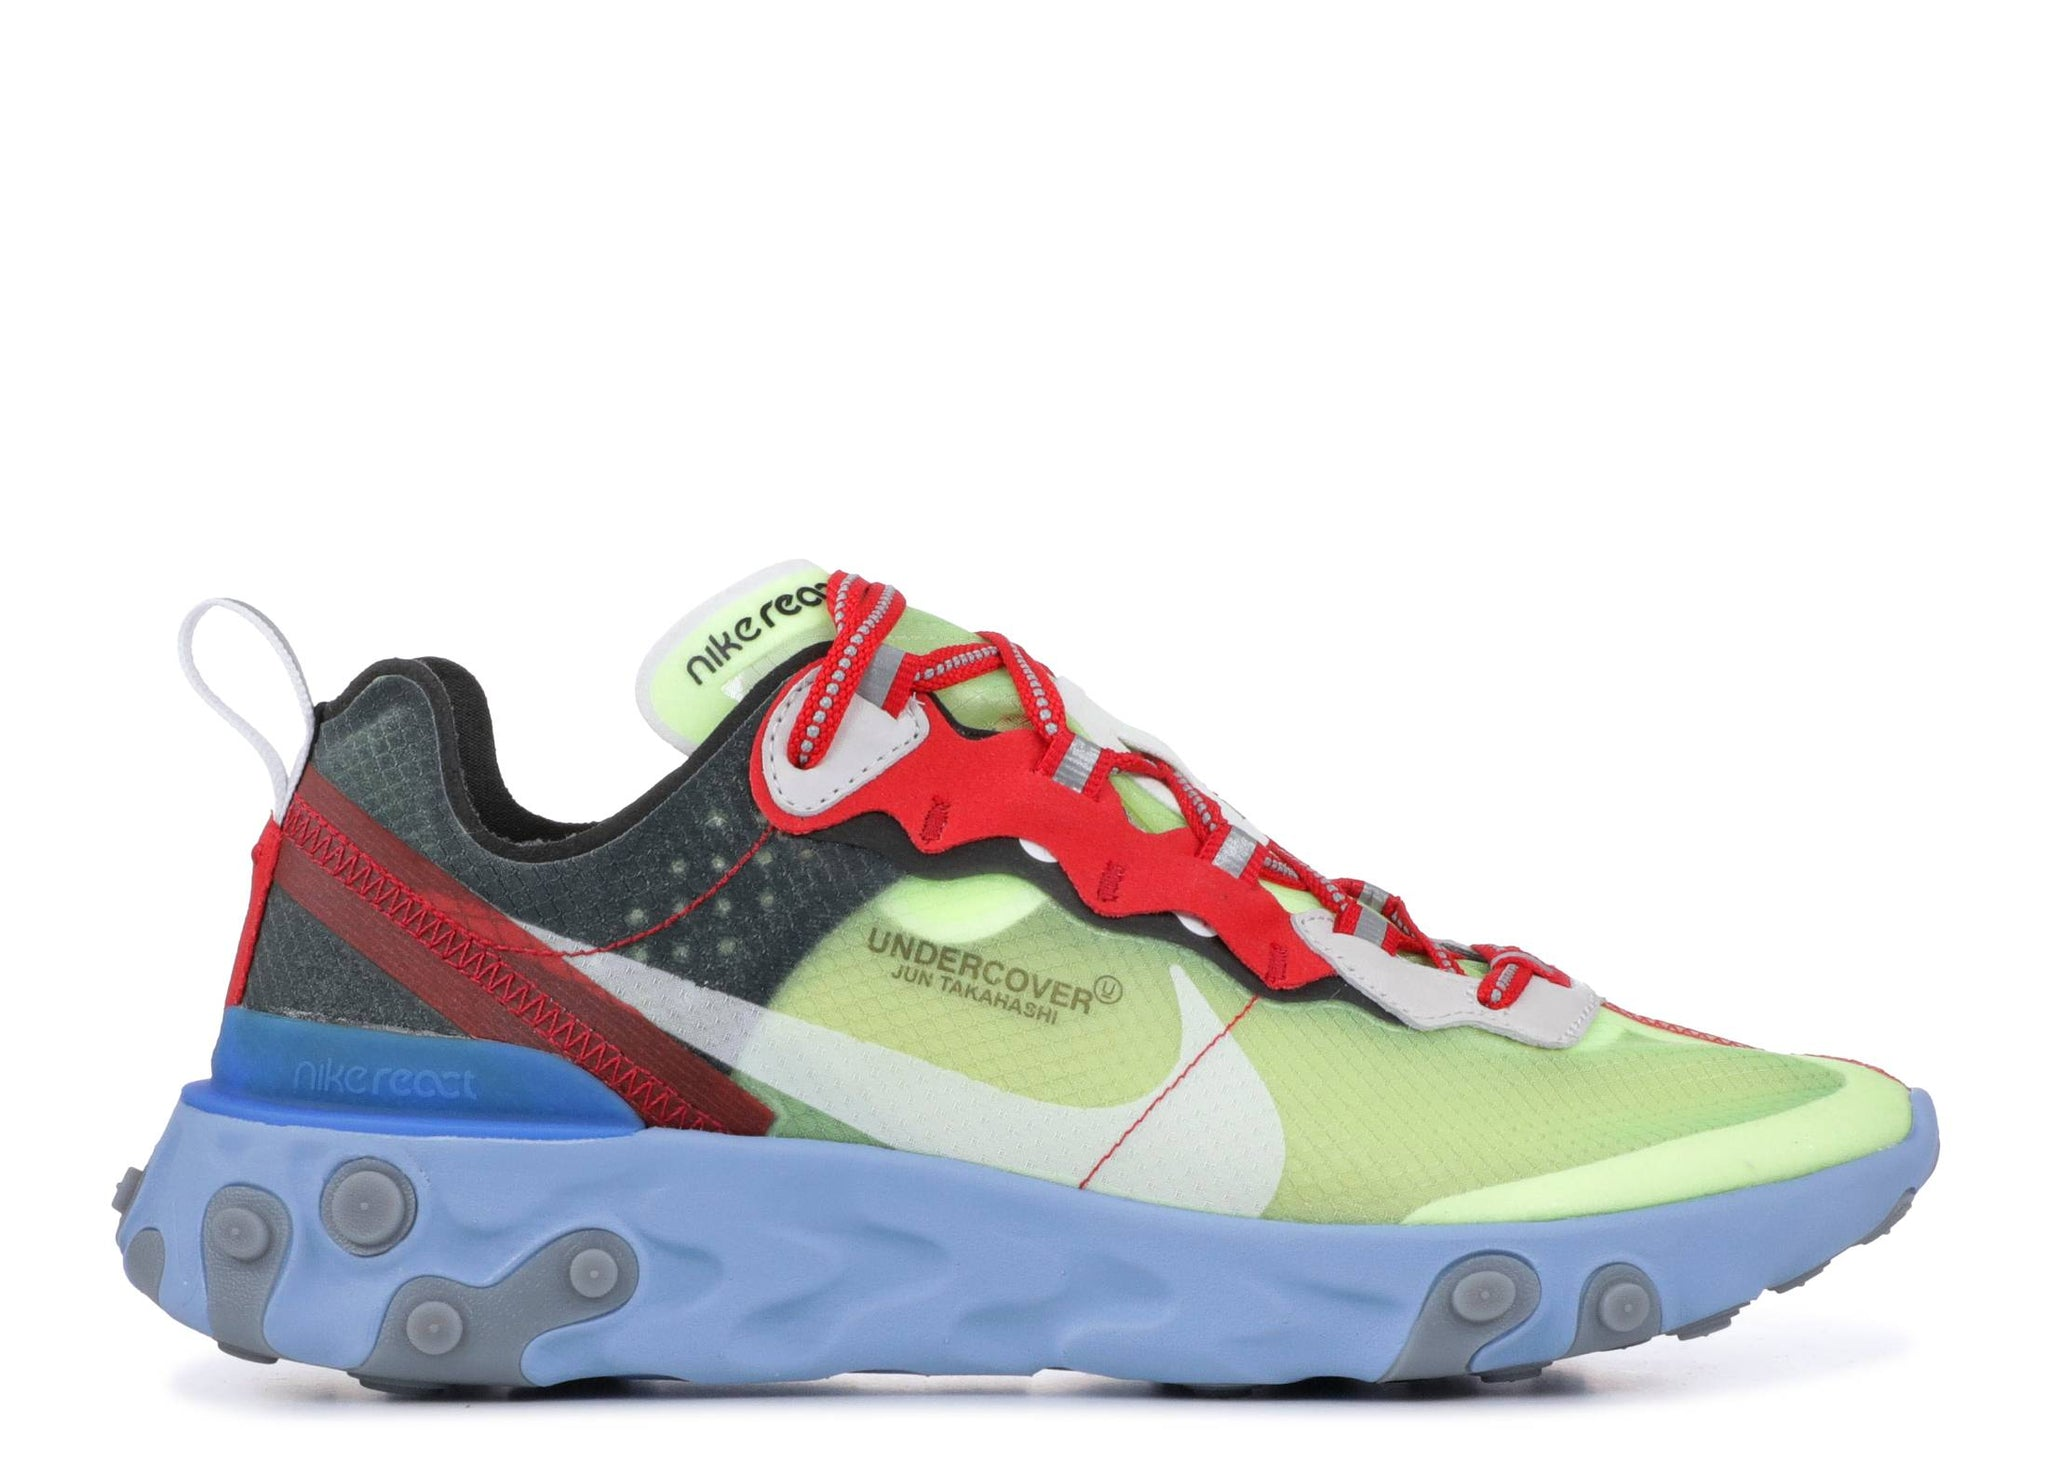 Nike React Element 87 Undercover Volt